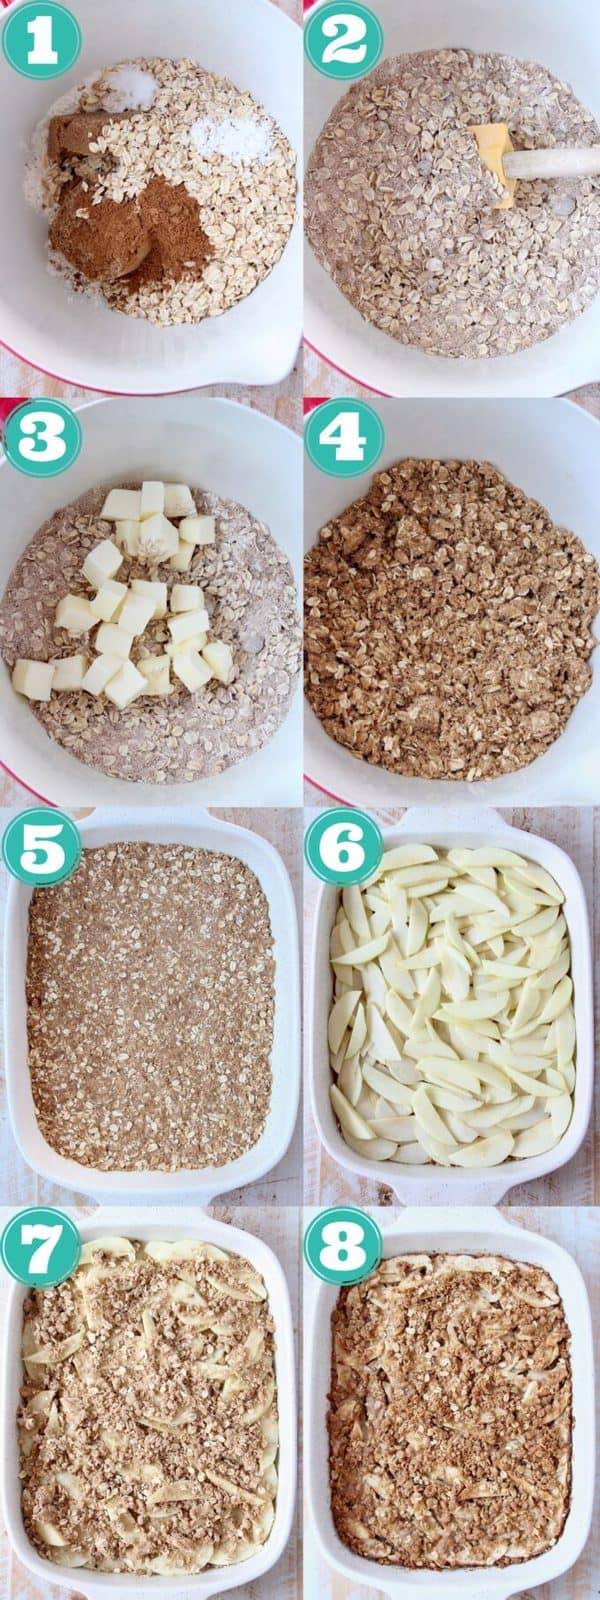 collage of images showing how to make apple oatmeal bars